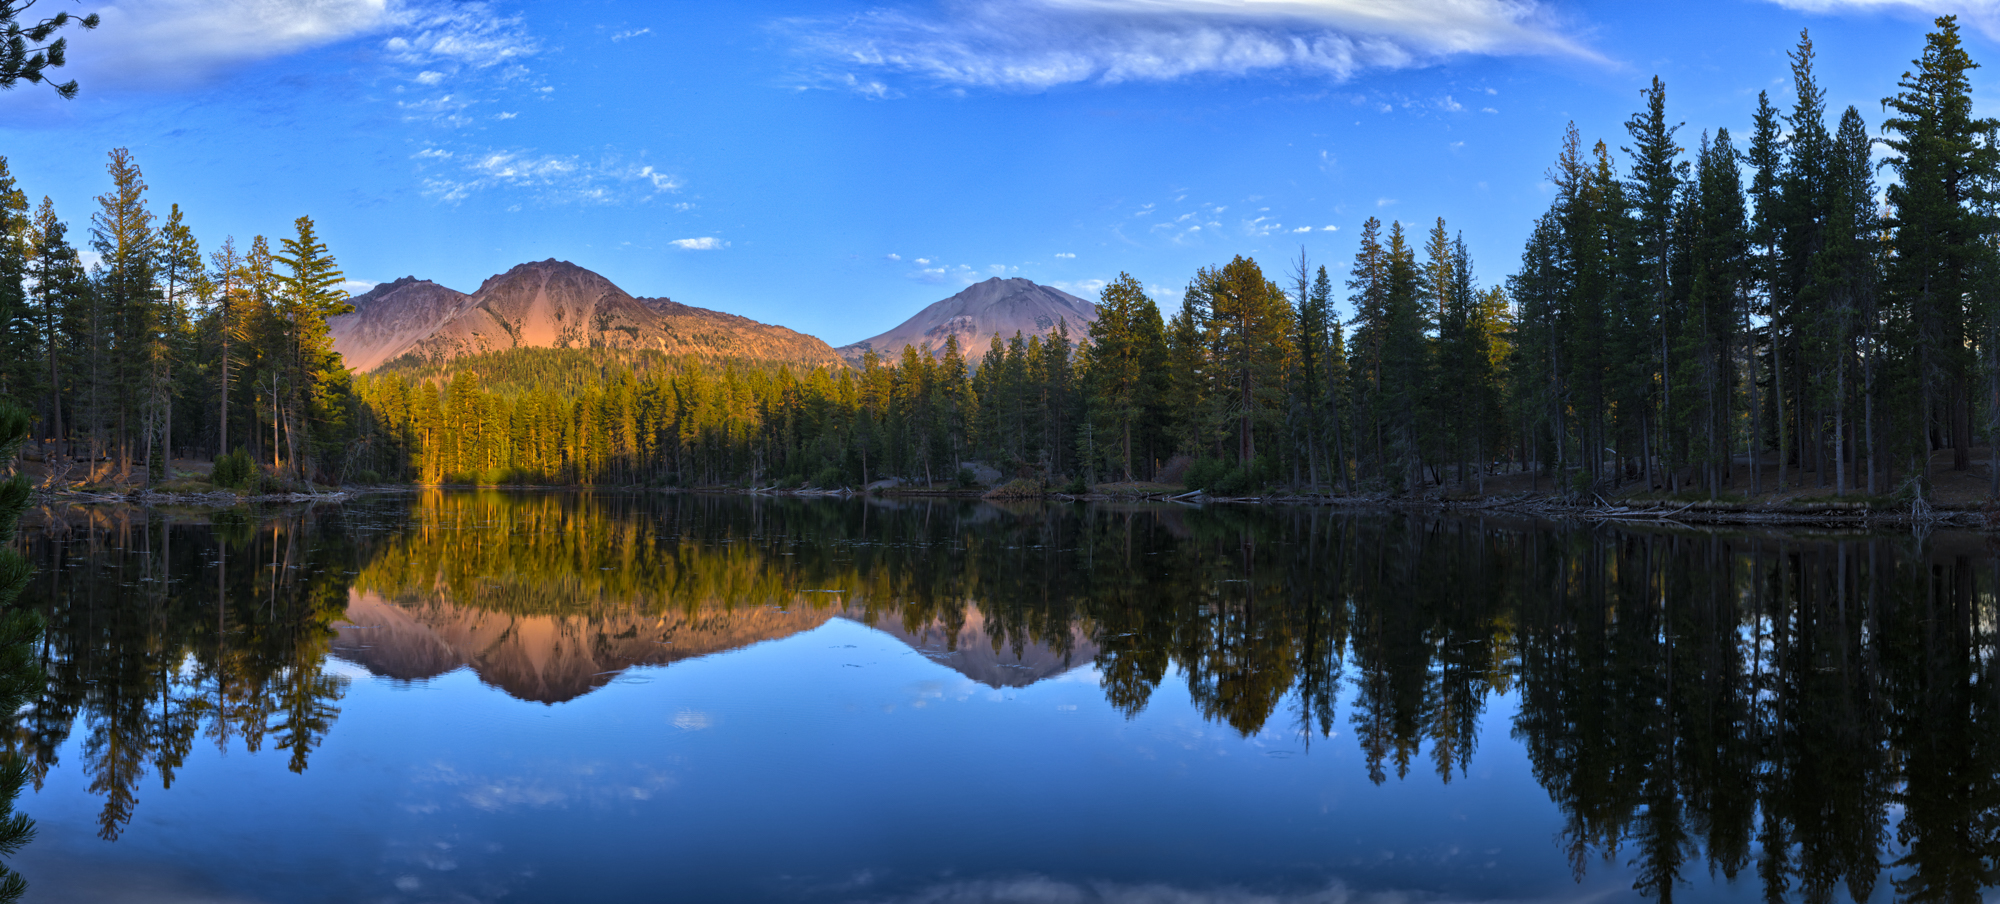 Reflection Lake #1